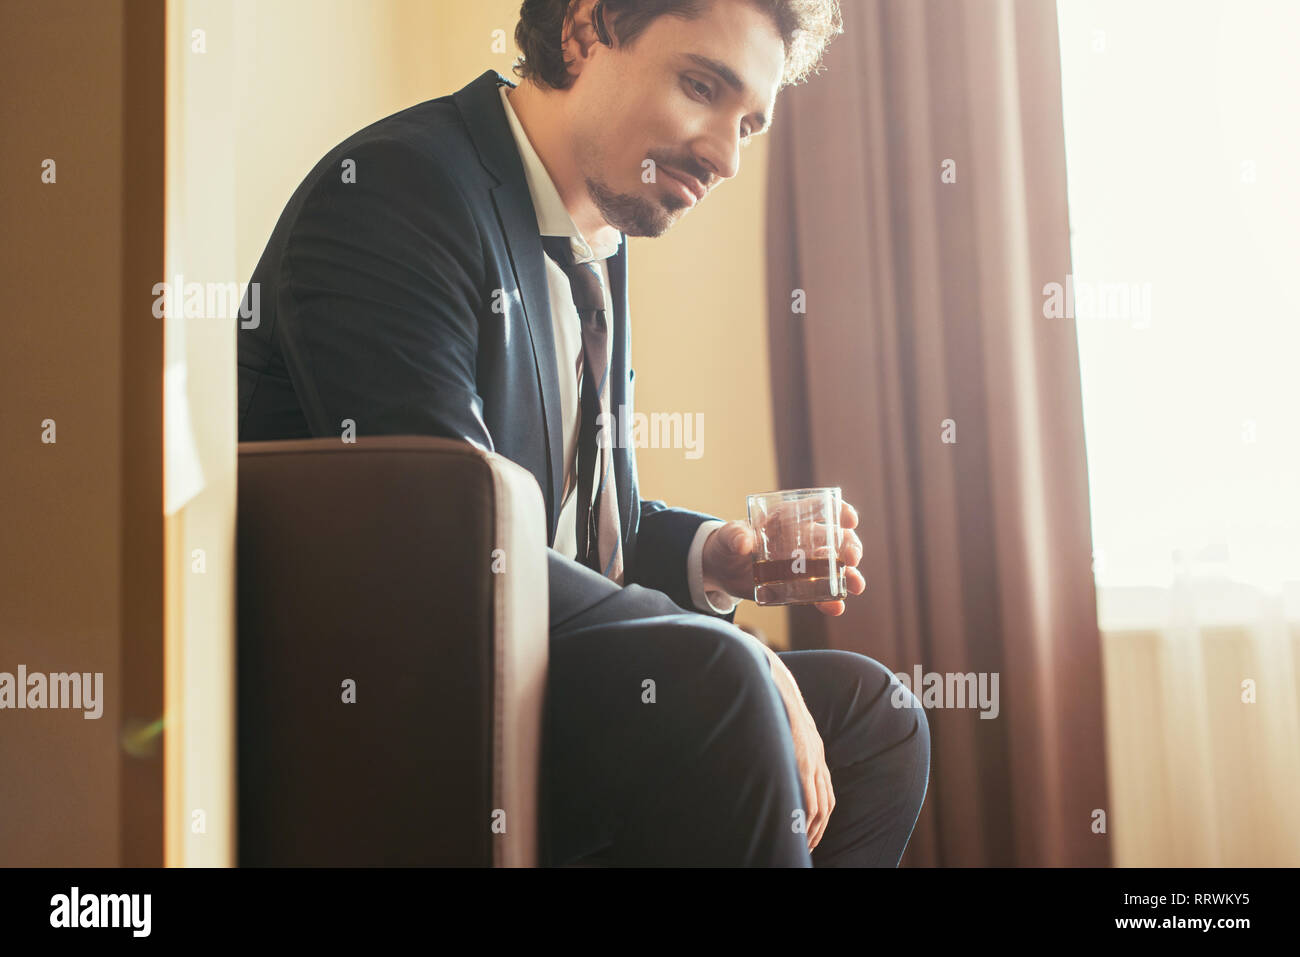 pensive businessman in formal wear holding glass of cognac in hotel room - Stock Image